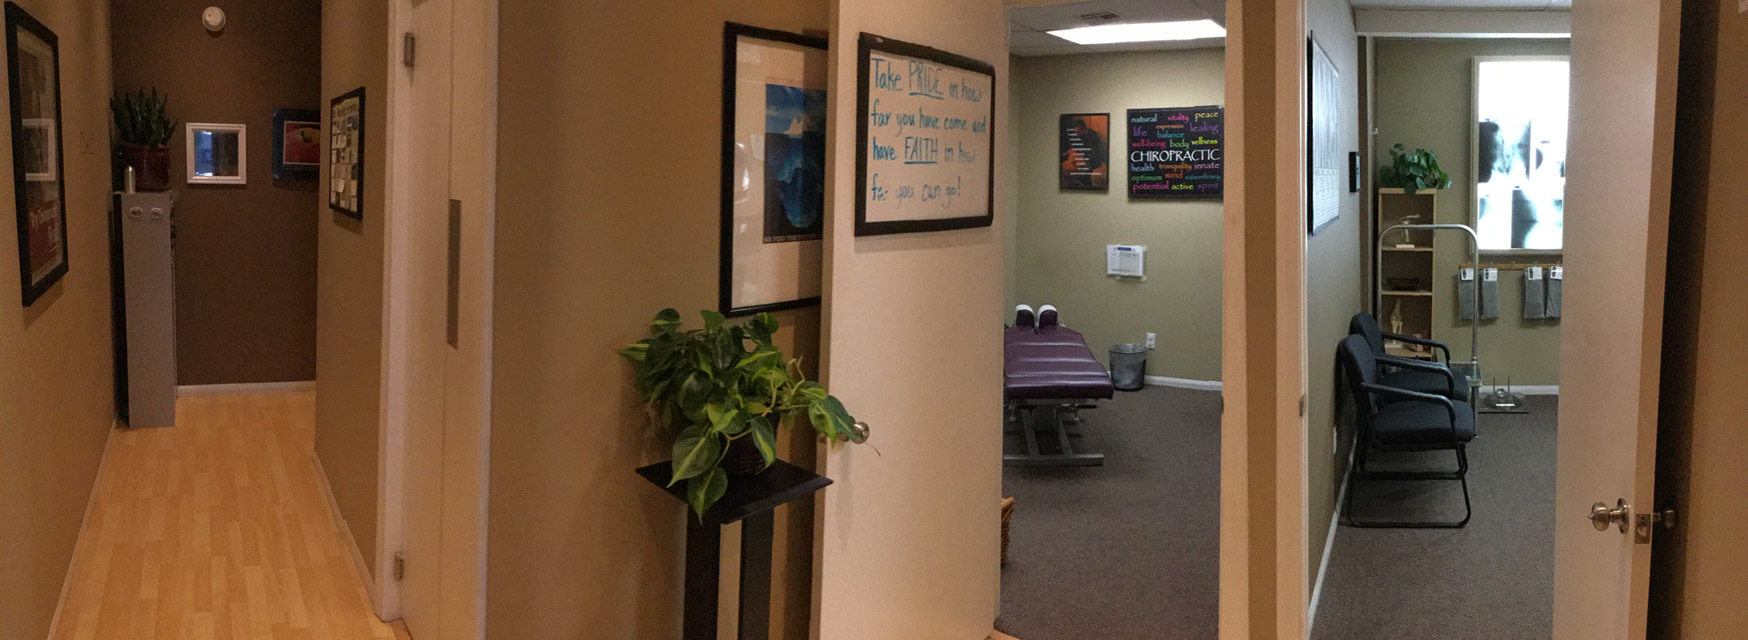 Image of San Diego Chiropractic and Massage patient rooms